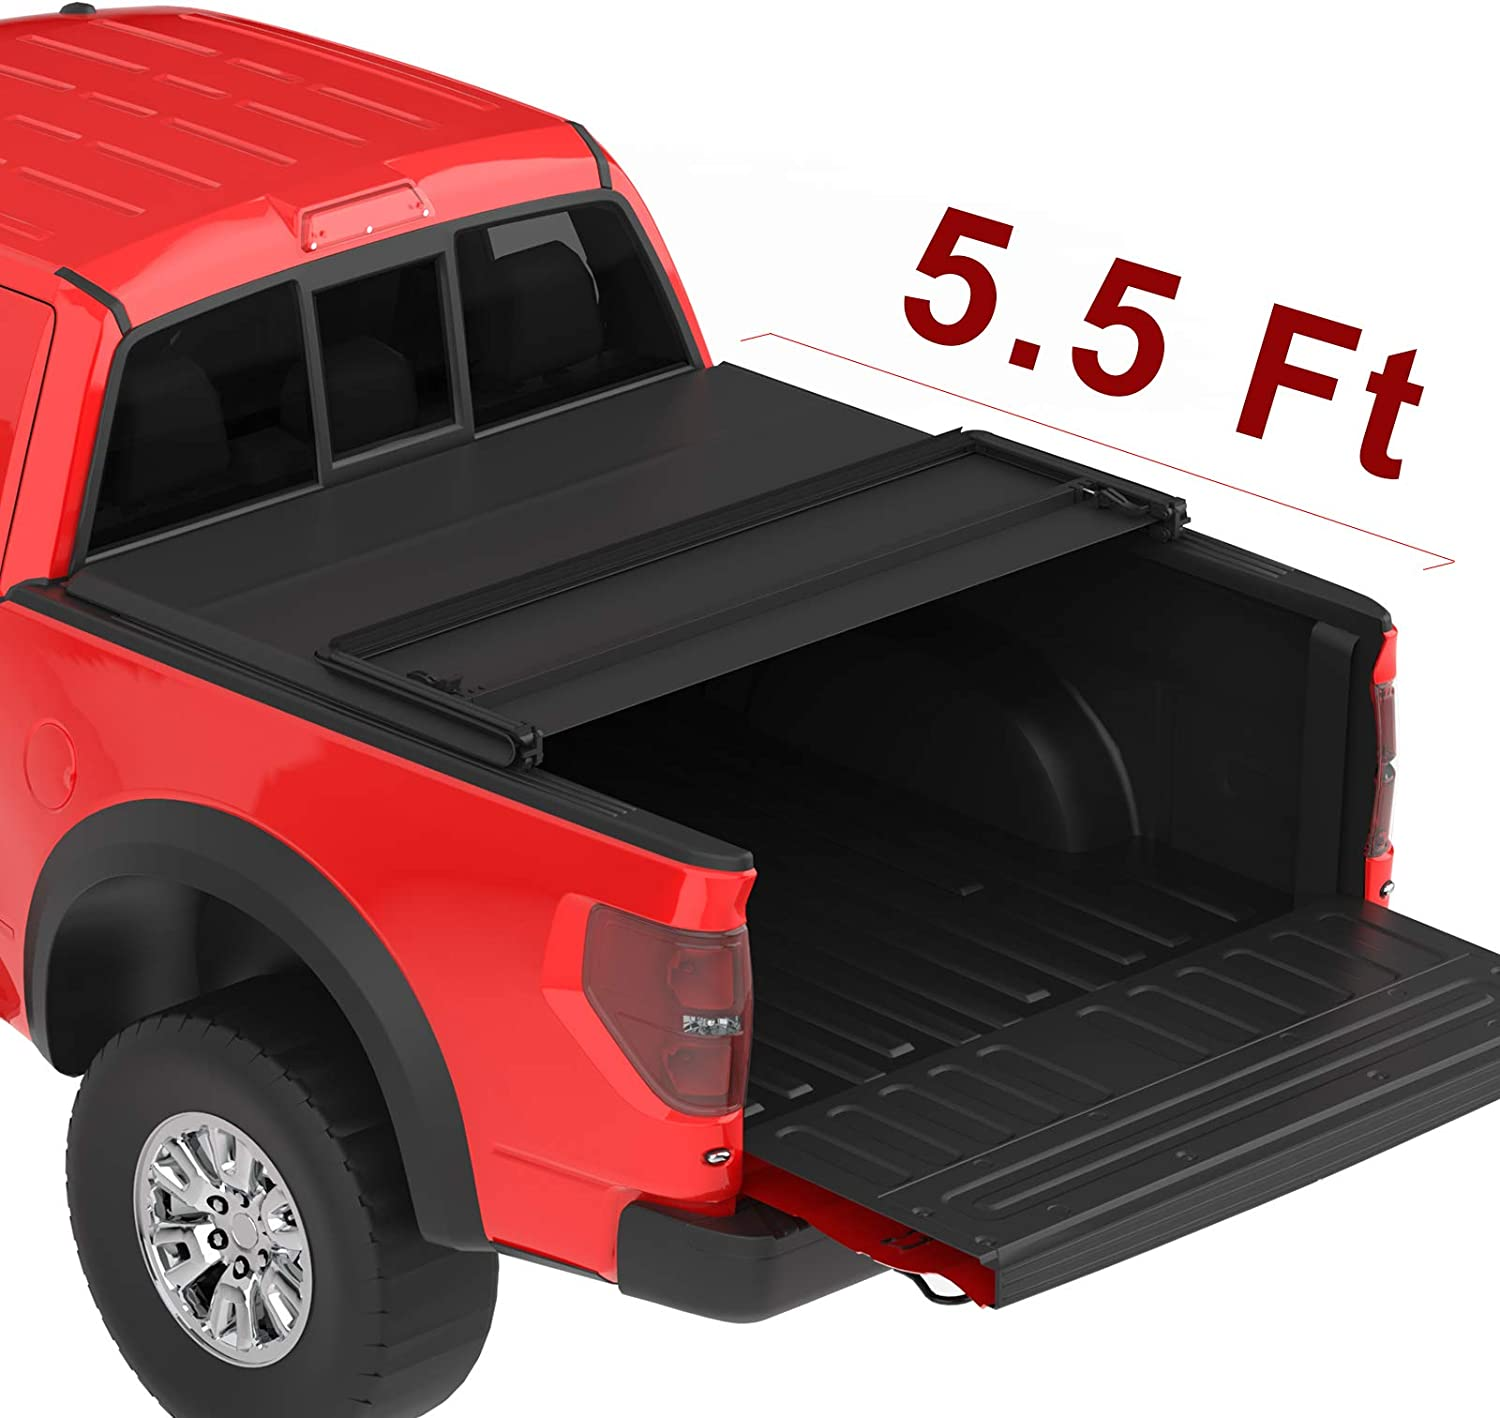 Best Tonneau Covers For Ford F150, oEdRo Upgraded Soft Tri-fold Truck Bed Tonneau Cover